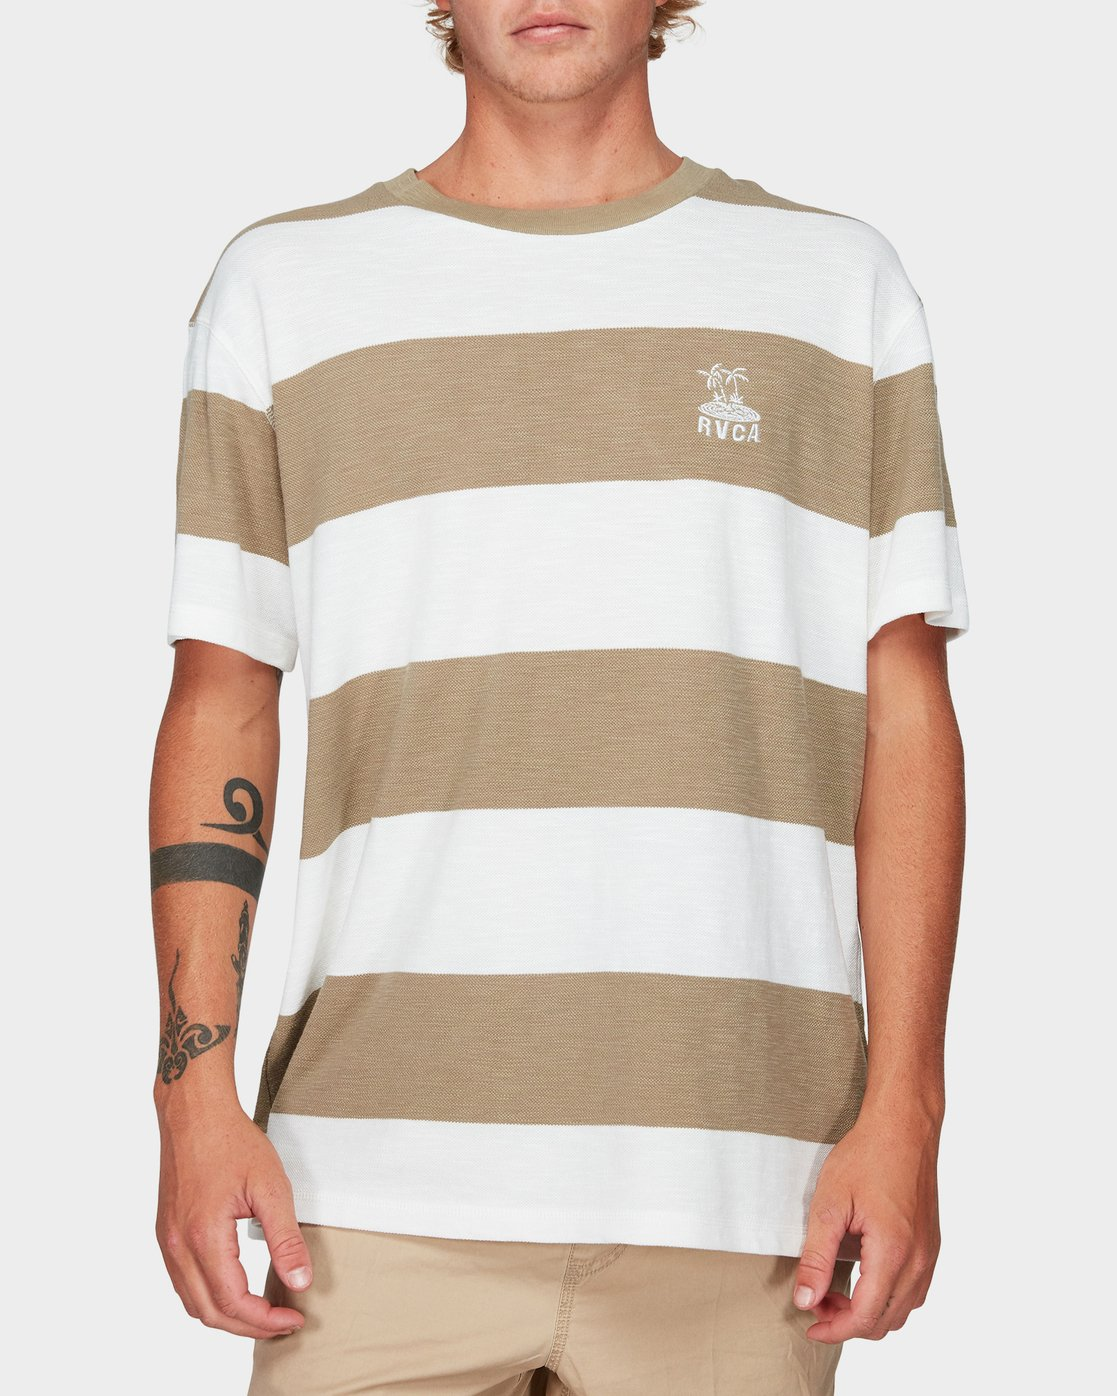 0 Records Stripe Short Sleeve T-Shirt Yellow R192047 RVCA